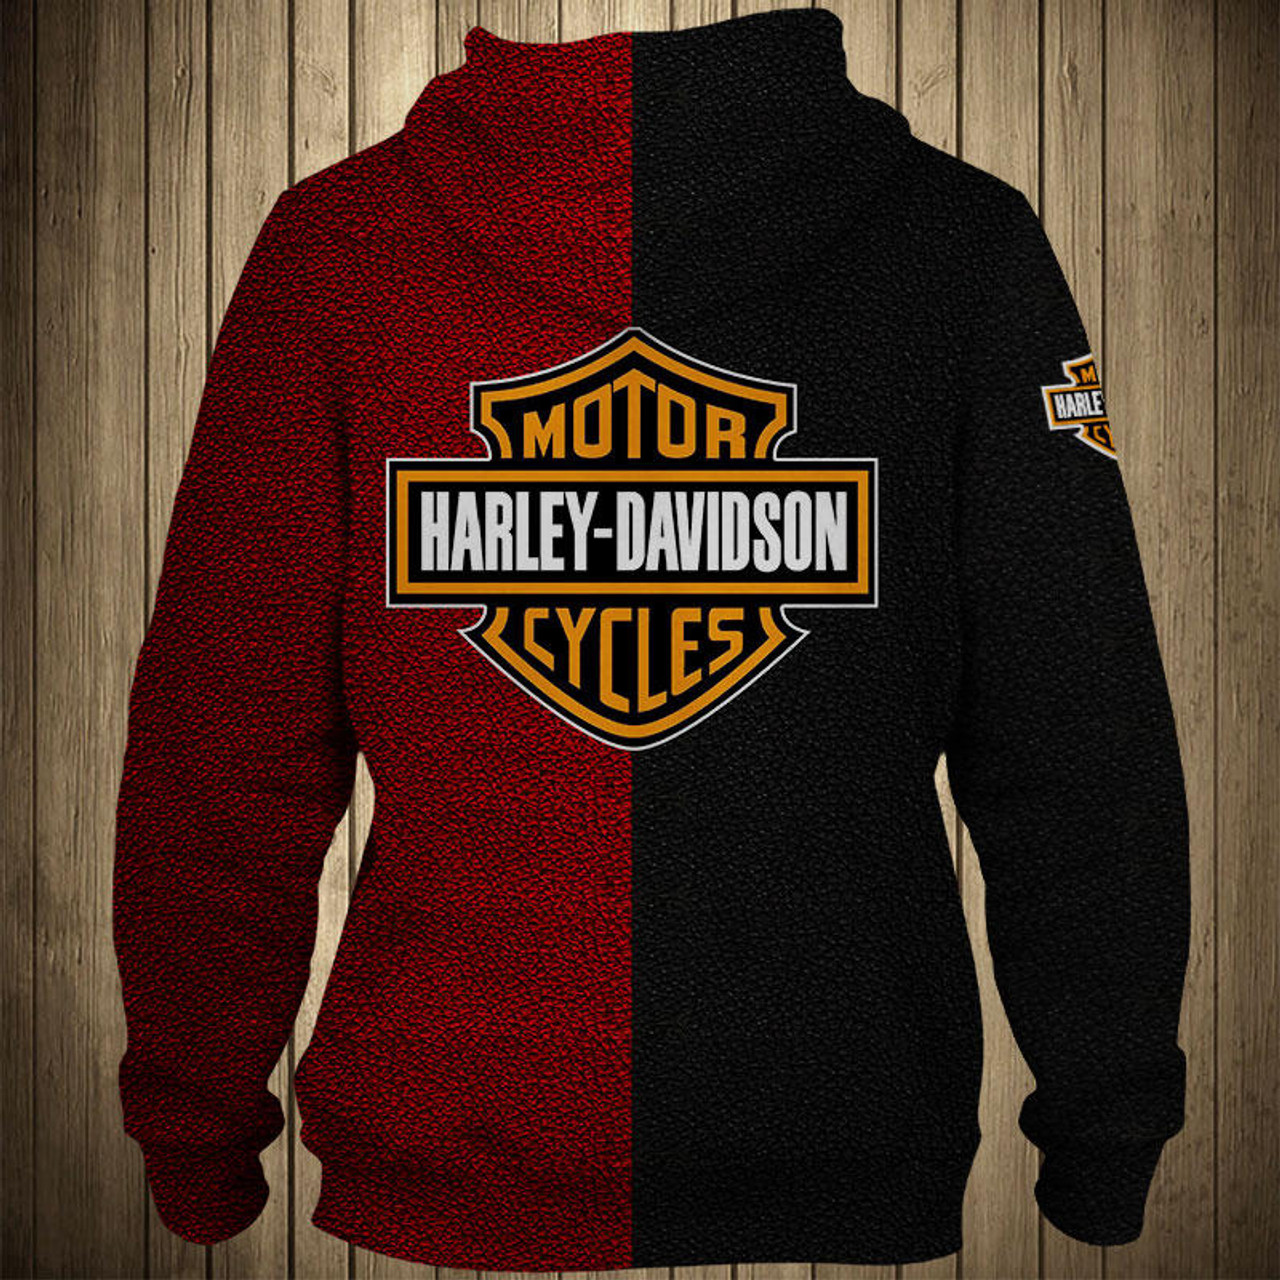 **(OFFICIAL-HARLEY-DAVIDSON-MOTORCYCLE-PULLOVER-HOODIES & HEAD-BANDED-SKULL-NO.1/CUSTOM-DETAILED-3D-GRAPHIC-PRINTED-DOUBLE-SIDED-DESIGN/CLASSIC-OFFICIAL-CUSTOM-HARLEY-LOGOS & OFFICIAL-HARLEY-COLORS/WARM-PREMIUM-RIDING-HARLEY-BIKERS-PULLOVER-HOODIE)**